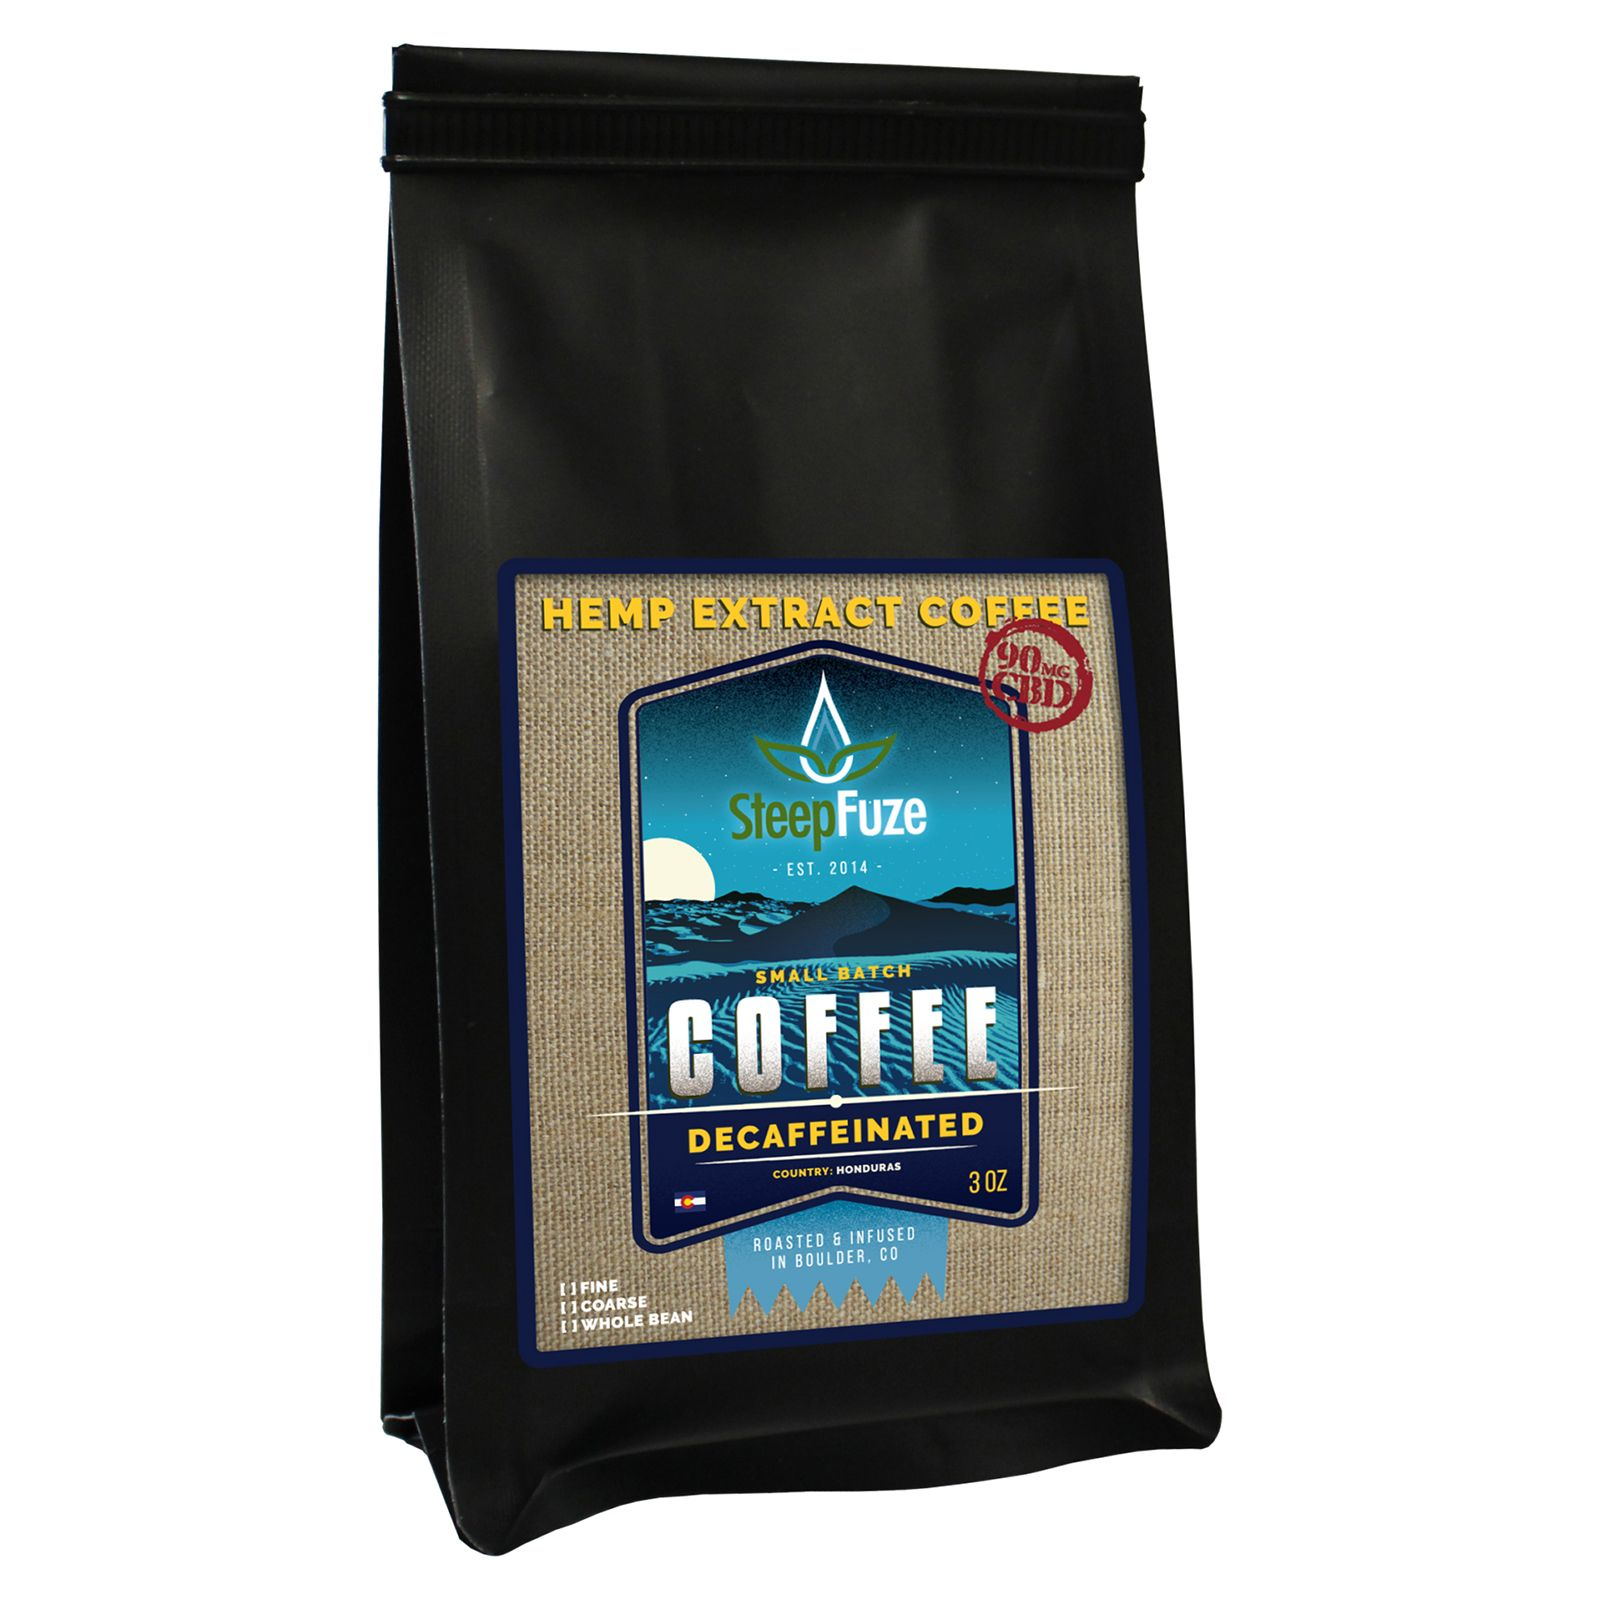 CBD Infused Whole Bean Coffee Decaffeinated 90 mg 3 oz. (85 g)